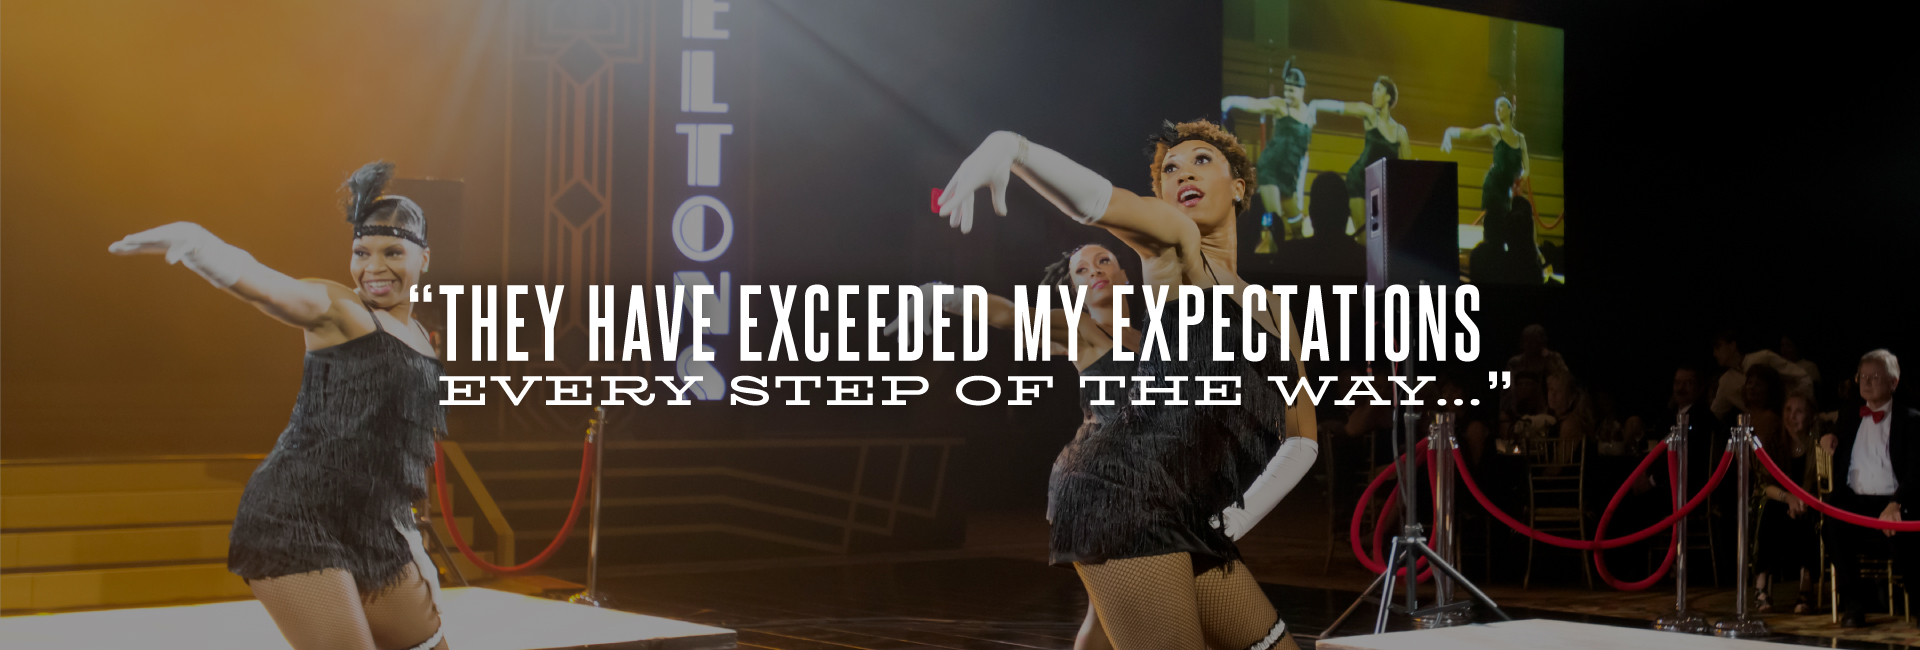 """They have exceeded my expectations every step of the way..."""